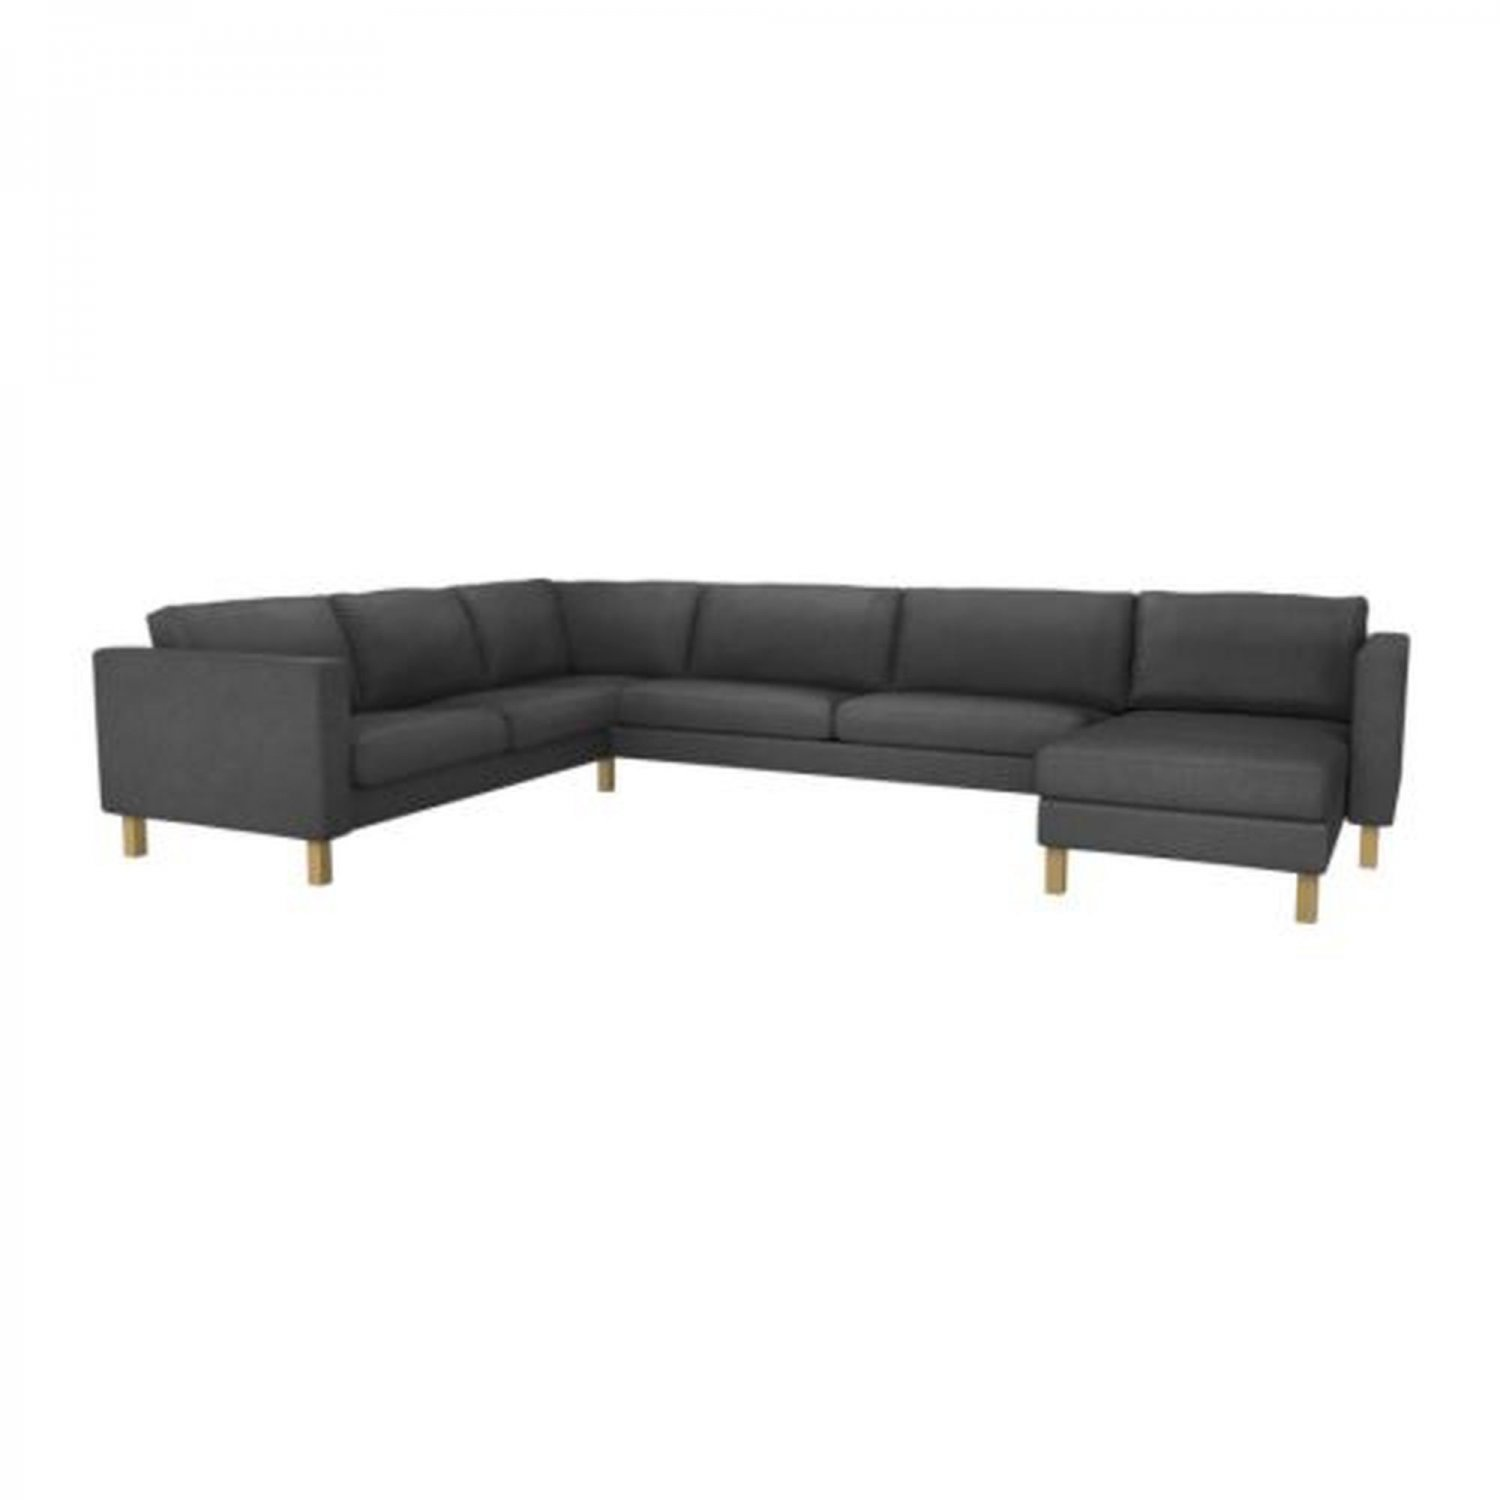 Karlstad Sofa Ikea Karlstad Corner Sofa With Chaise Slipcover Cover